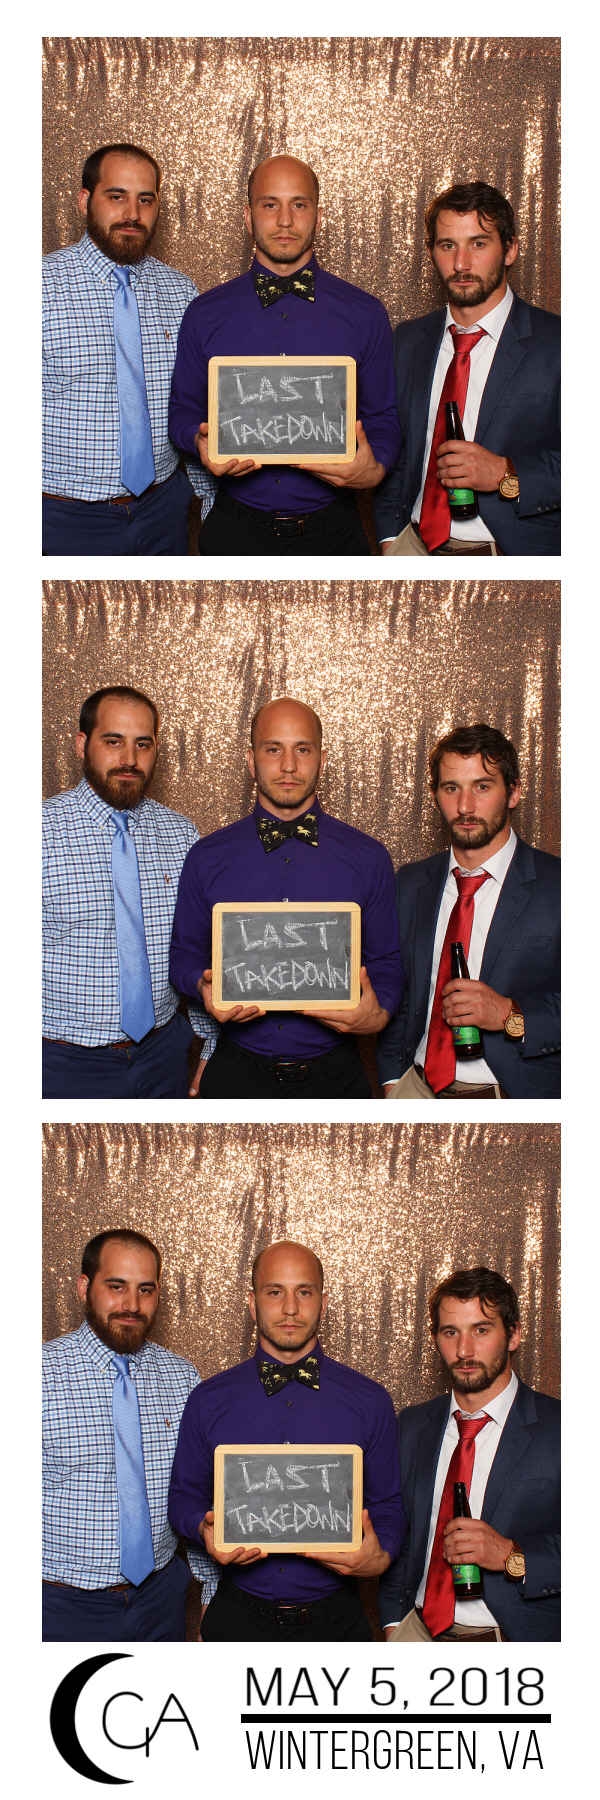 wintergreen resort wedding photo booth skyline ballroom boxy booth photo booth company event photo booth staunton harrisonburg Charlottesville nelson crozet